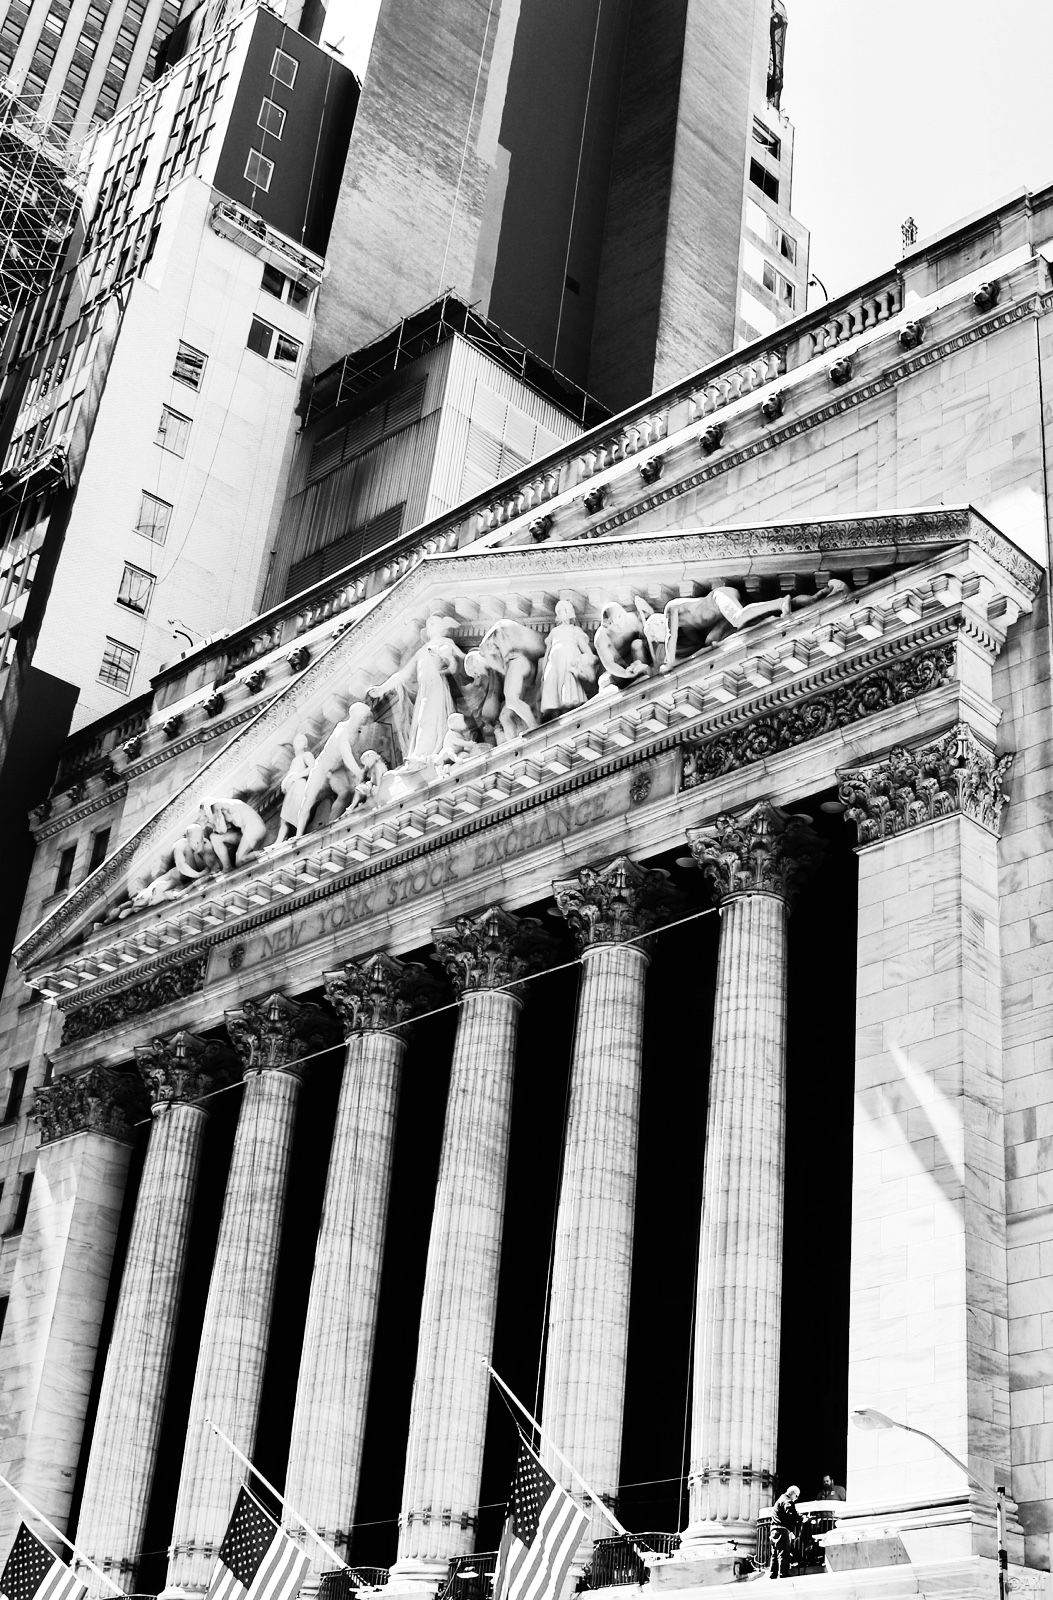 The New York Stock Exchange is the   world's largest stock exchange.